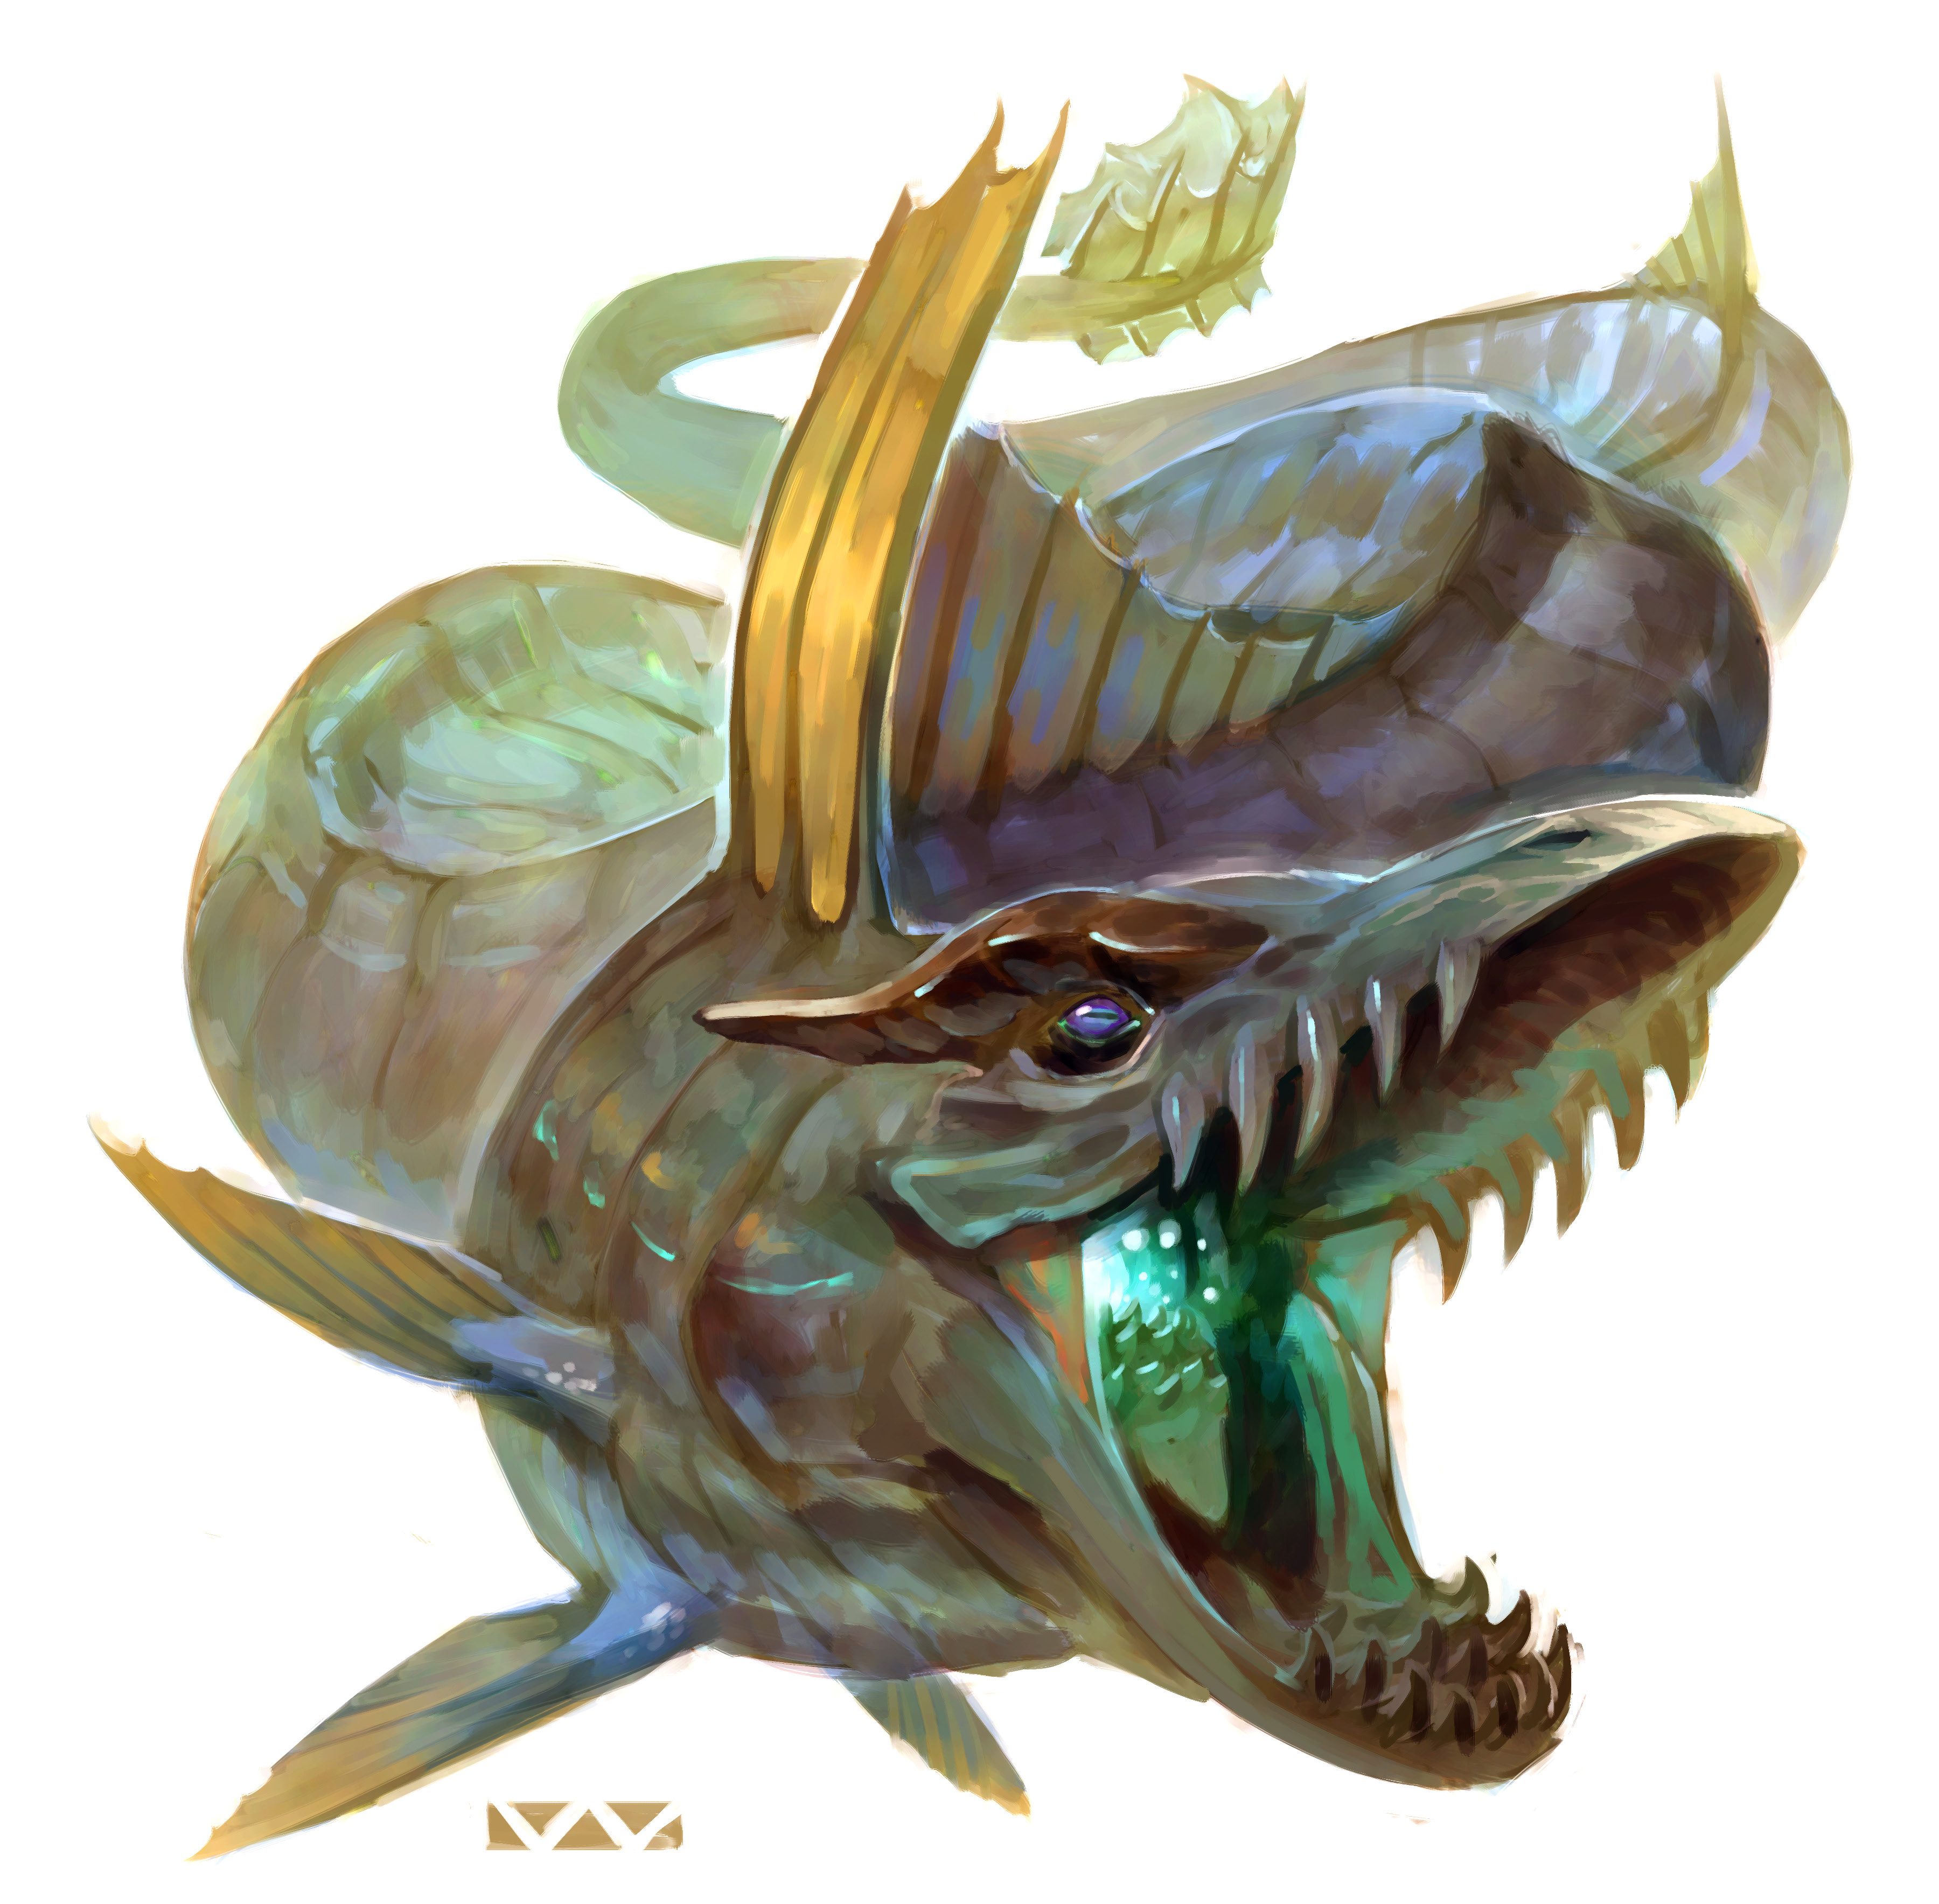 "stephen-wood ""River Wurm"" - by Stephen Wood Dungeon Master's Guild ""Angler: a Ranger's Path"" (2018-02) © Wizards of the Coast e dell'autore, tutti i diritti riservati"